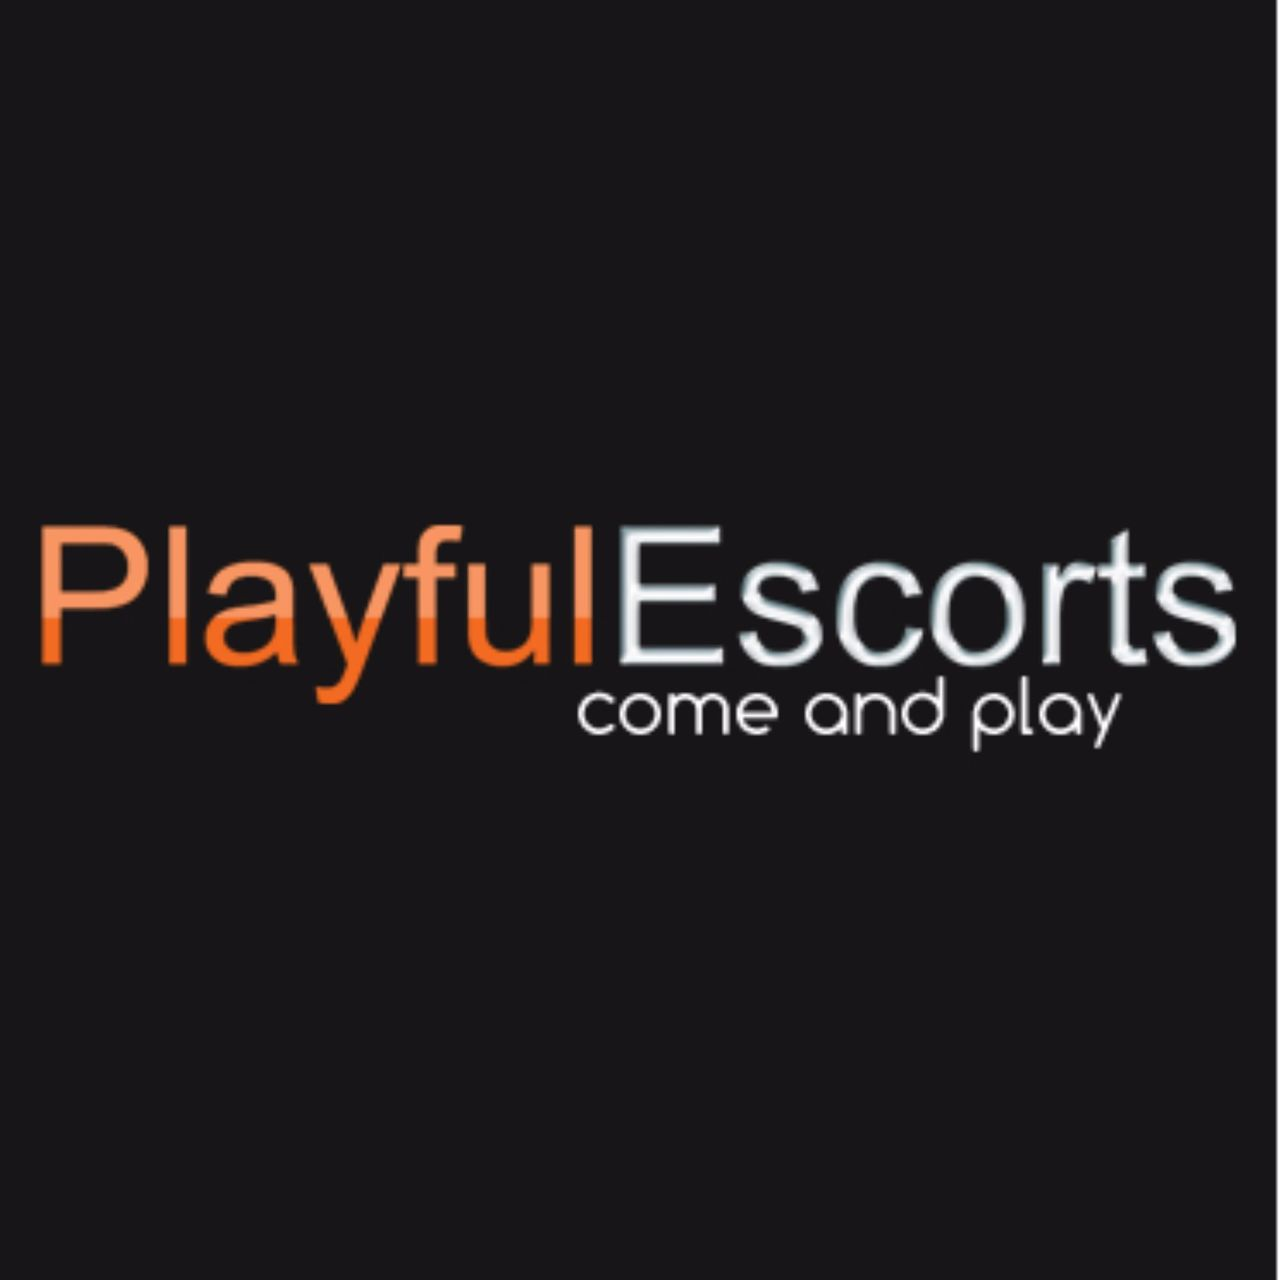 Playful Escorts